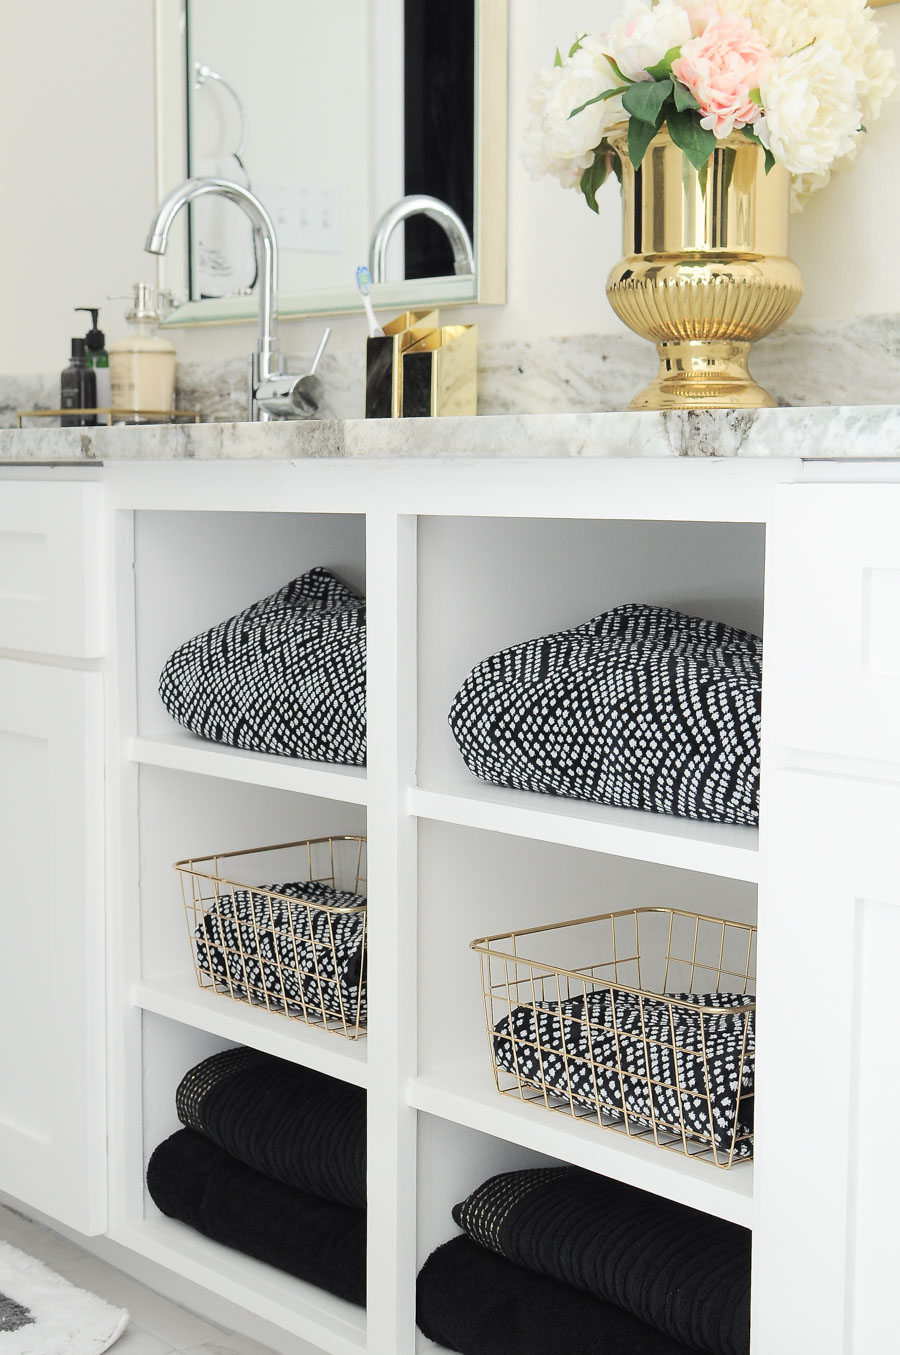 Black and white towels paired with gold baskets look gorgeous on the open shelves of this master bathroom vanity. The whole space is just gorgeous!